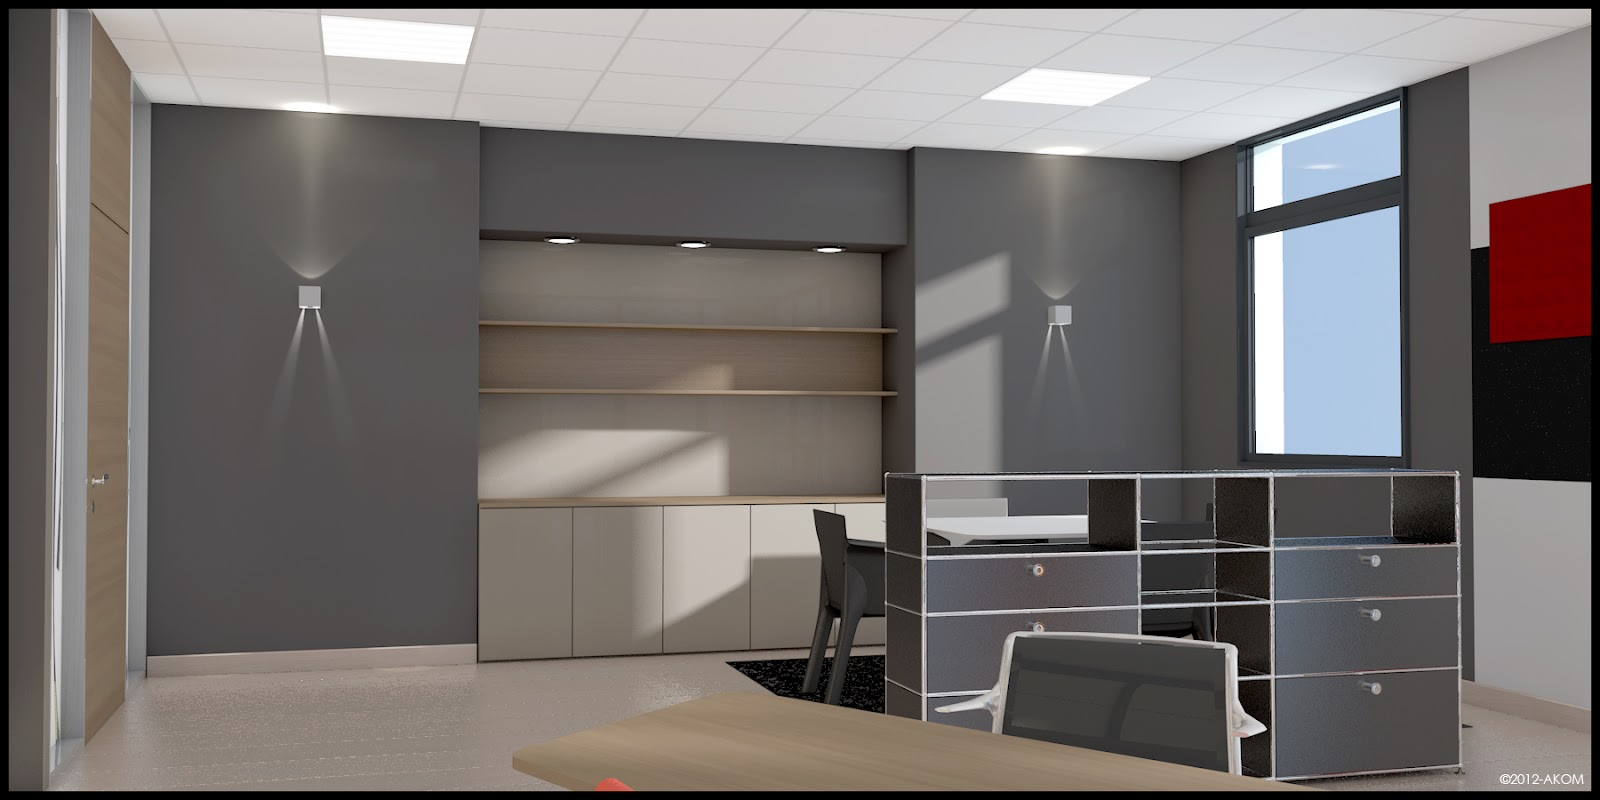 Am nagement 3d bureau dg akom design - Amenagement bureau ...